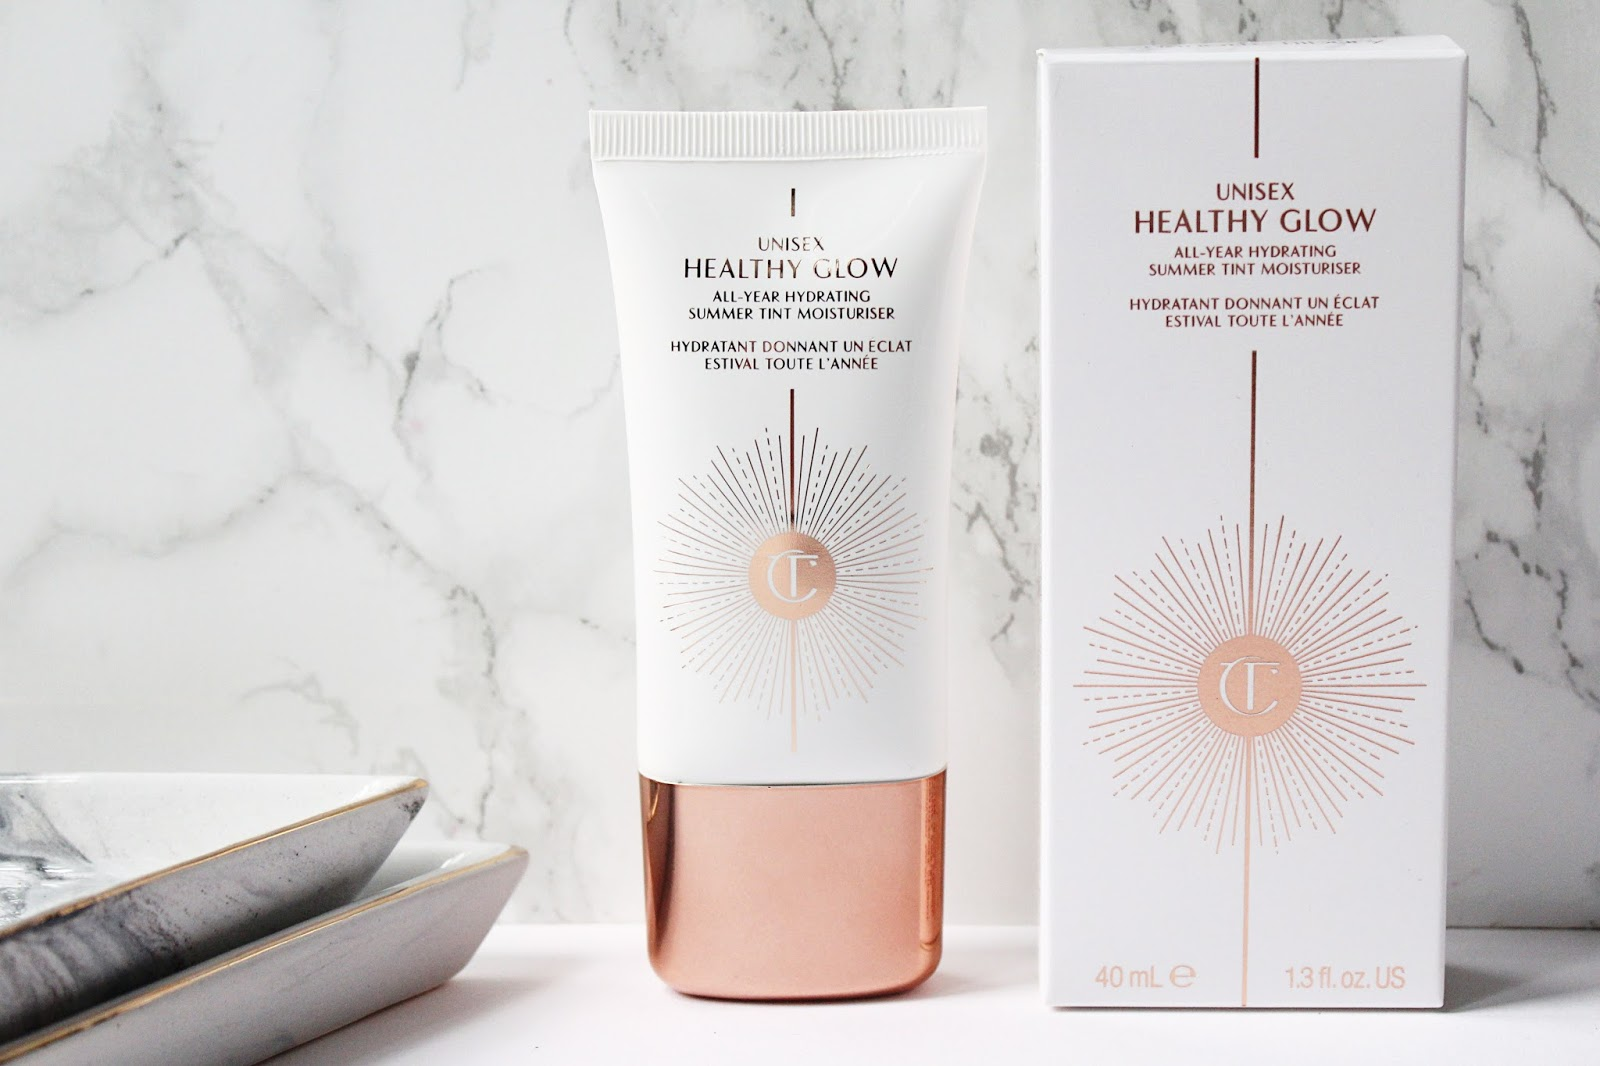 Charlotte Tilbury Unisex Healthy Glow Review